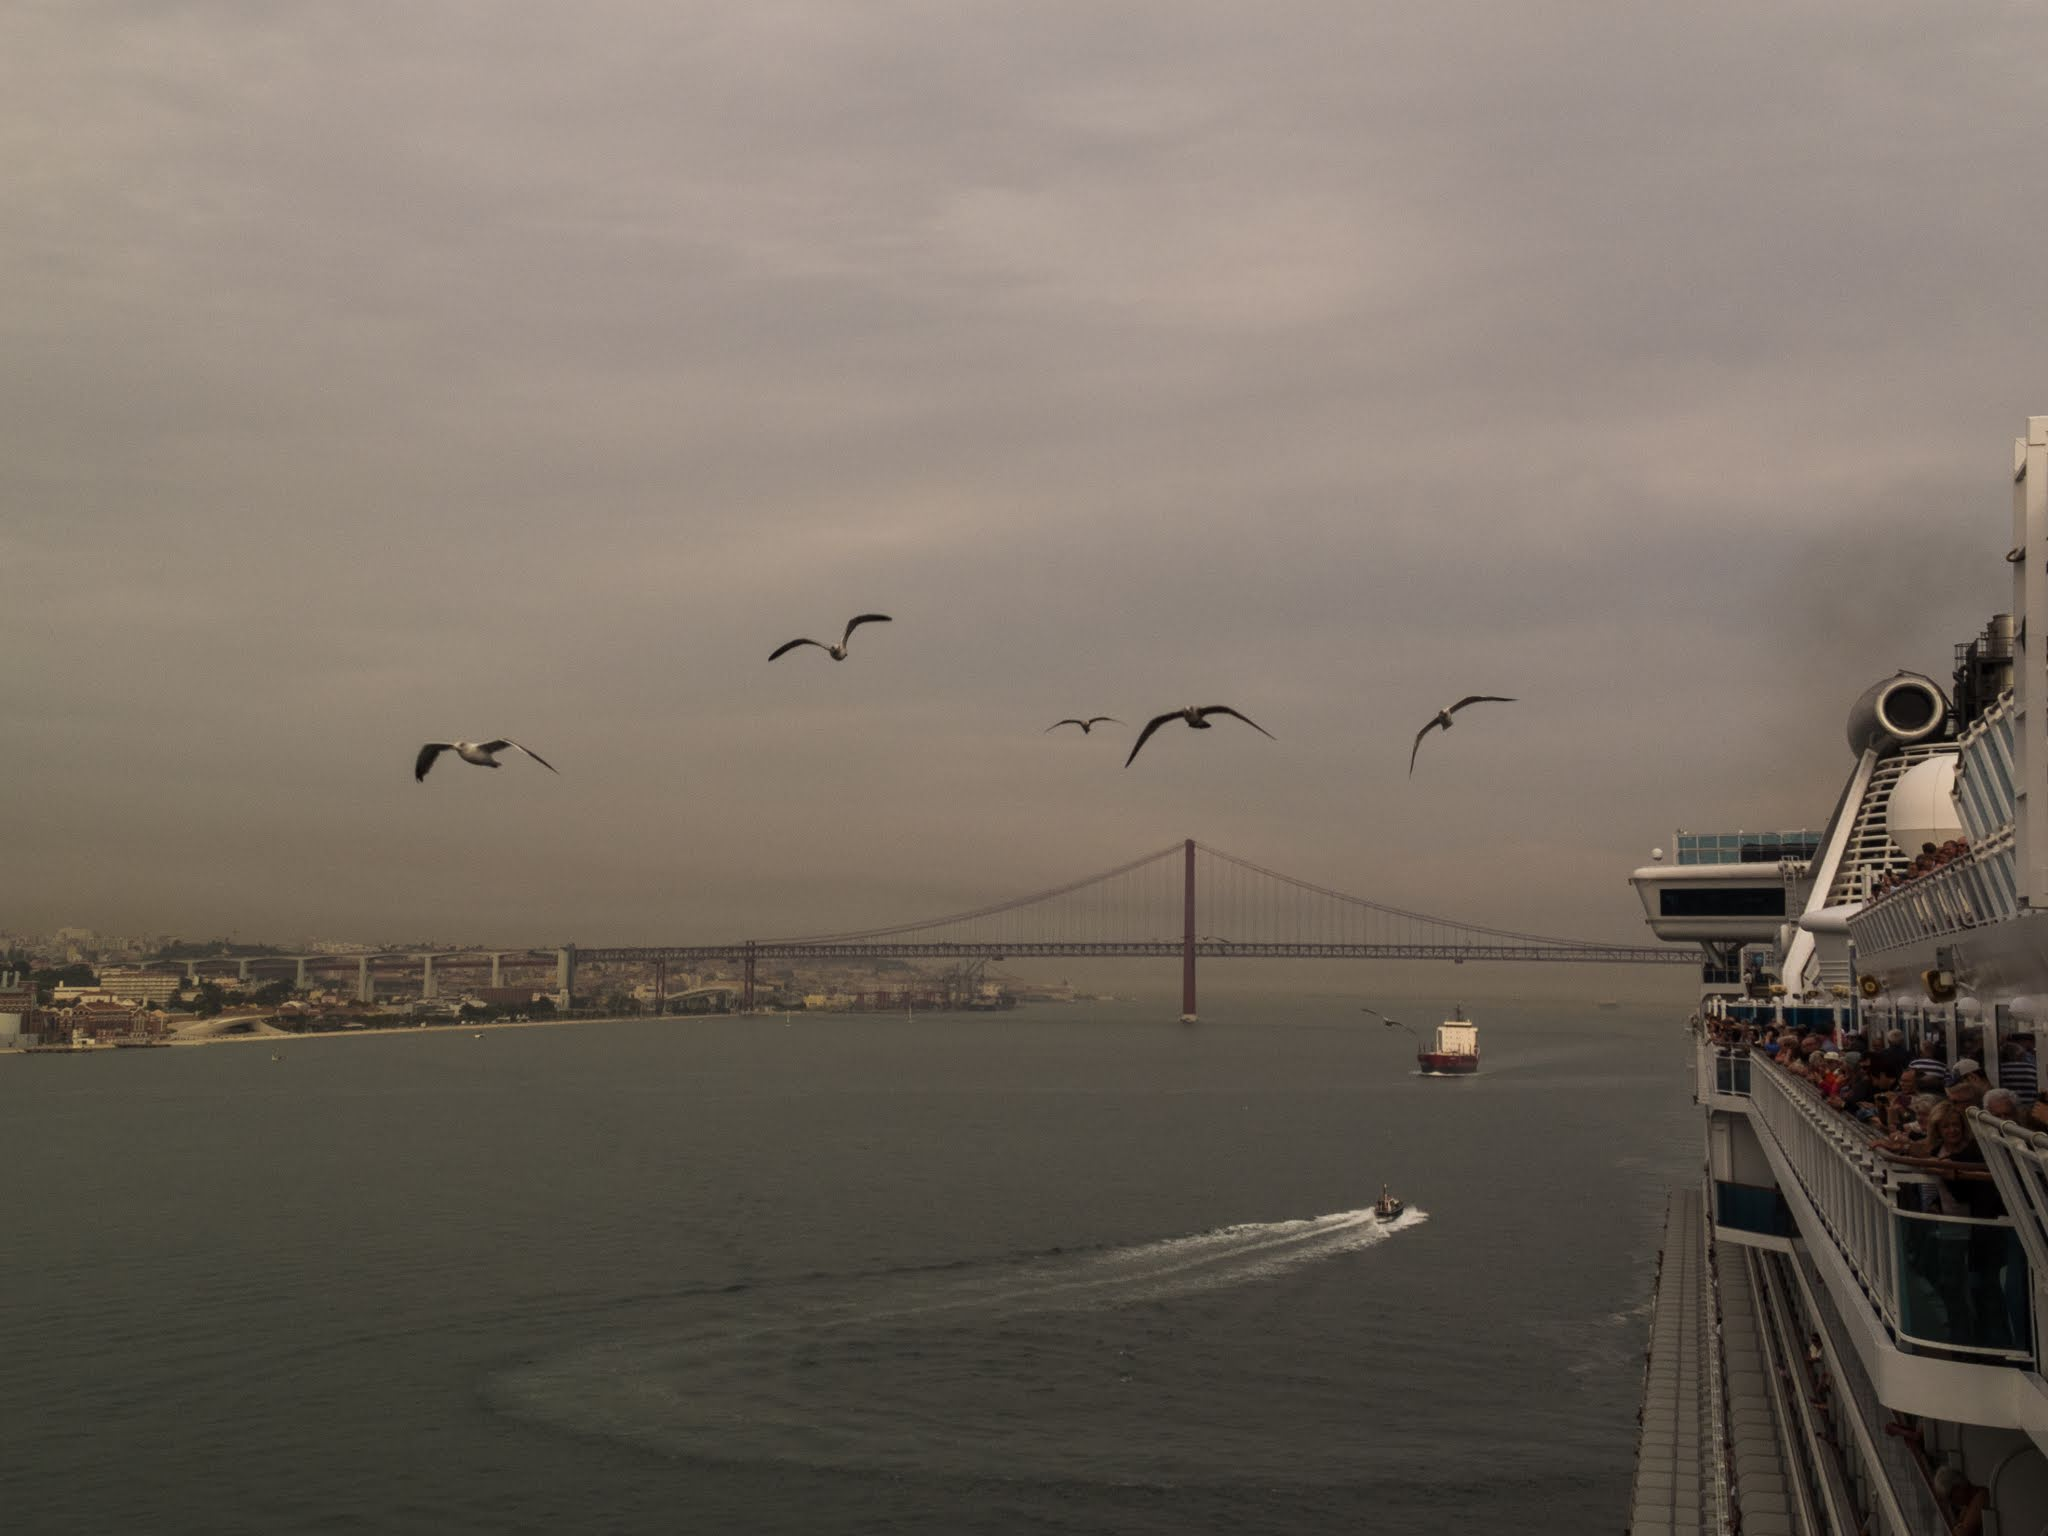 Leaving the port of Lisbon on a cruise ship accompanied by seagulls with the 25 de Abril Bridge in the background.